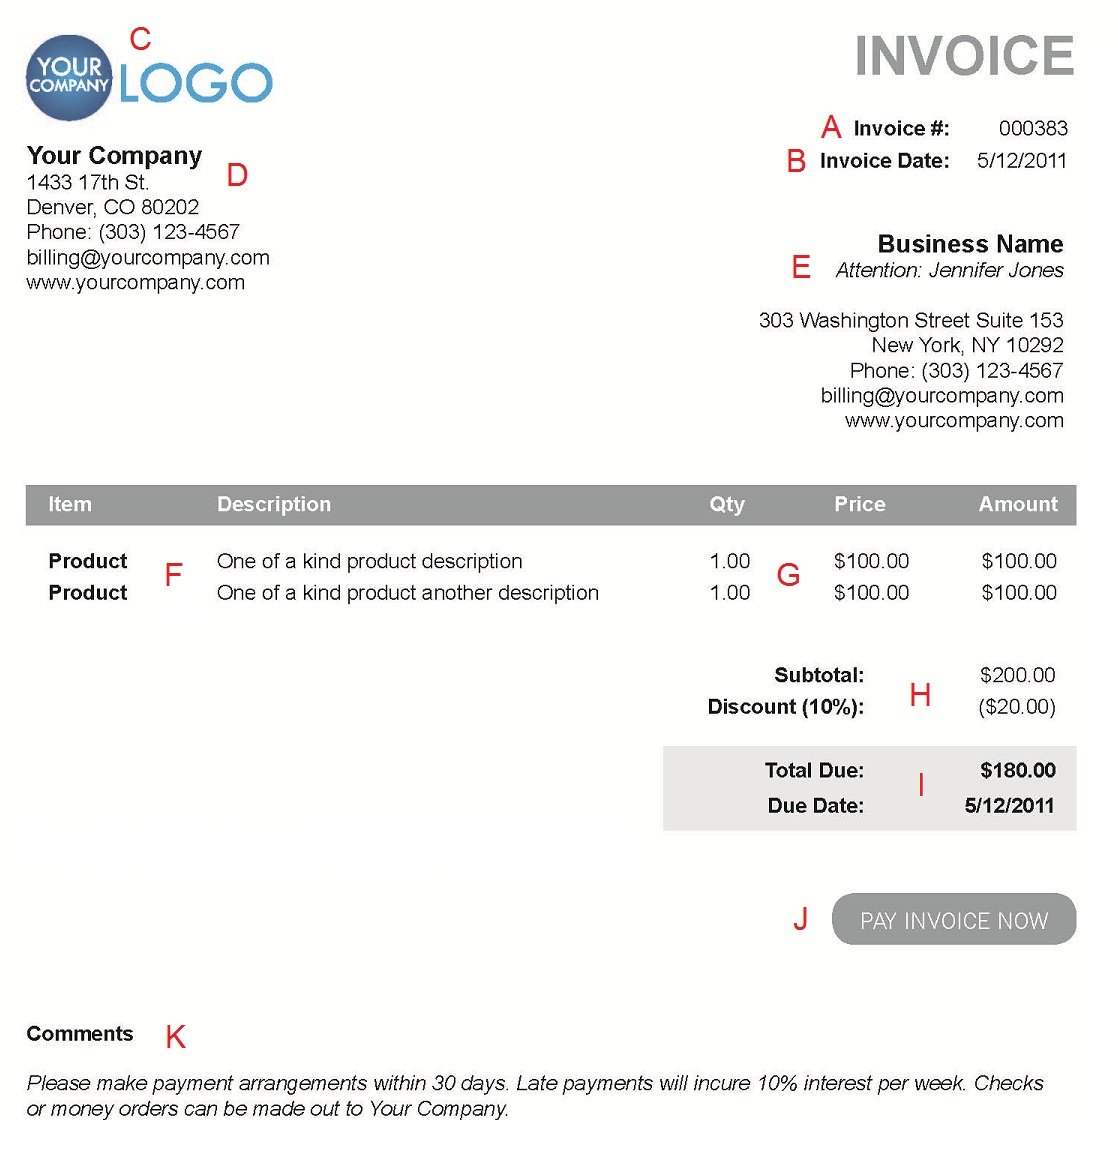 Ultrablogus  Marvelous The  Different Sections Of An Electronic Payment Invoice With Excellent A  With Astounding Send An Invoice Also Pay Invoice In Addition Invoice Email Template And Auto Repair Invoice Software As Well As Invoice Automation Additionally Toll By Plate Invoice Florida From Paysimplecom With Ultrablogus  Excellent The  Different Sections Of An Electronic Payment Invoice With Astounding A  And Marvelous Send An Invoice Also Pay Invoice In Addition Invoice Email Template From Paysimplecom